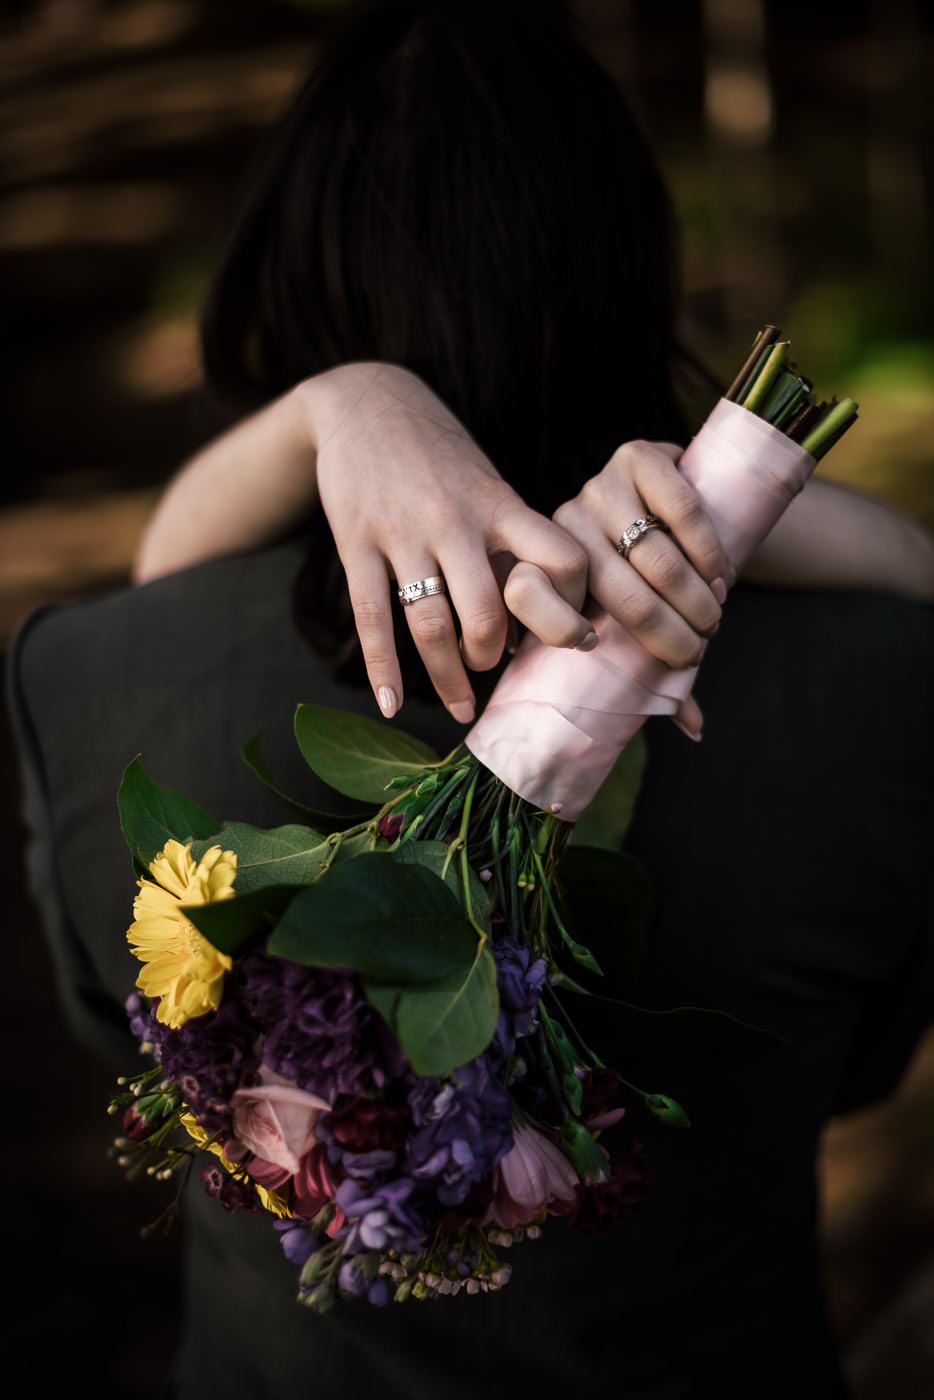 Beautiful photograph of a bride's wedding ring and bouquet.